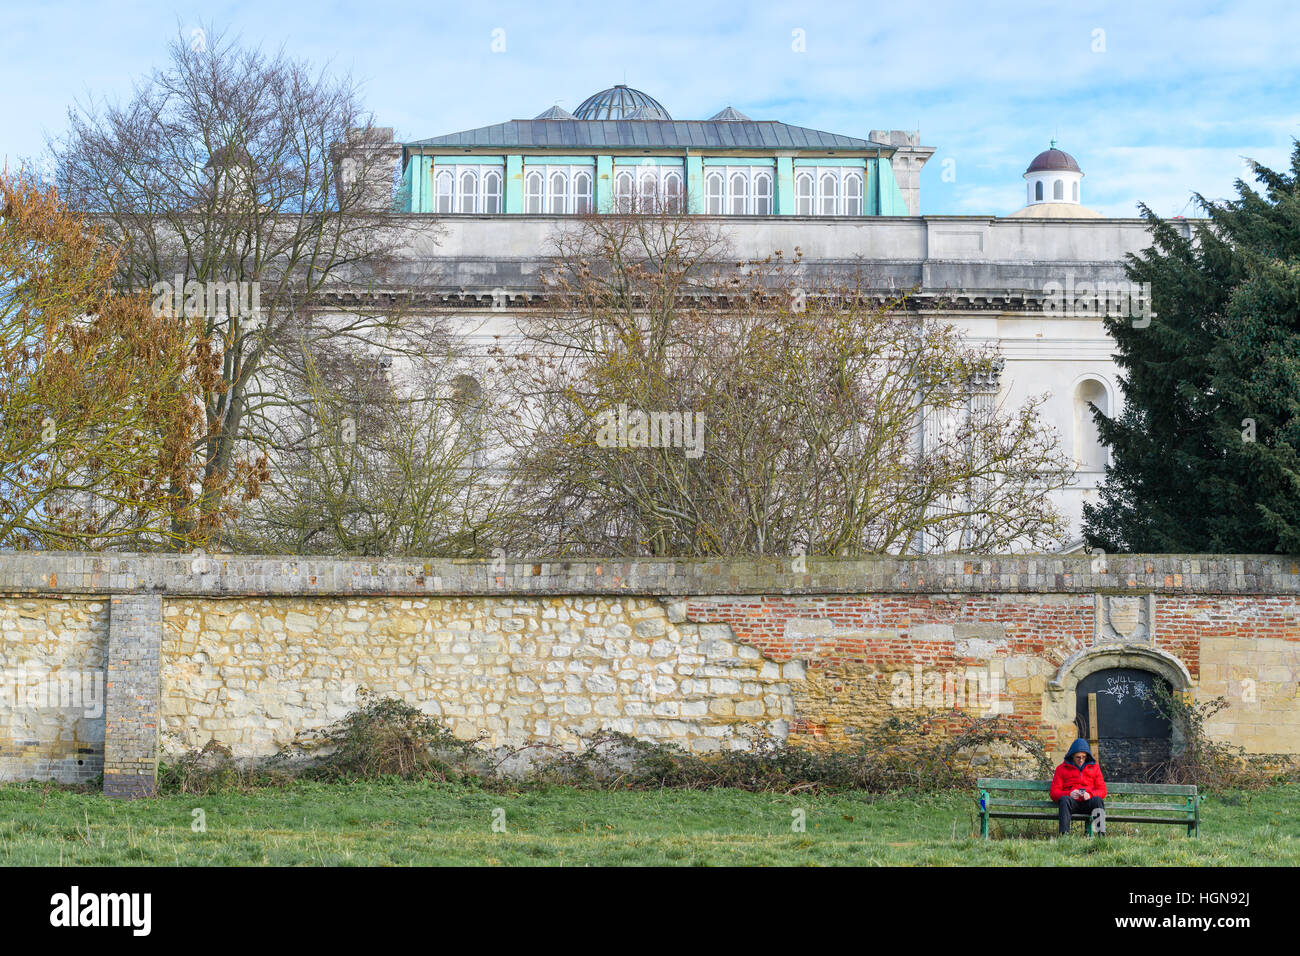 Wall of Peterhouse college, with Fitzwilliam museum in the background, university of Cambridge, England. - Stock Image